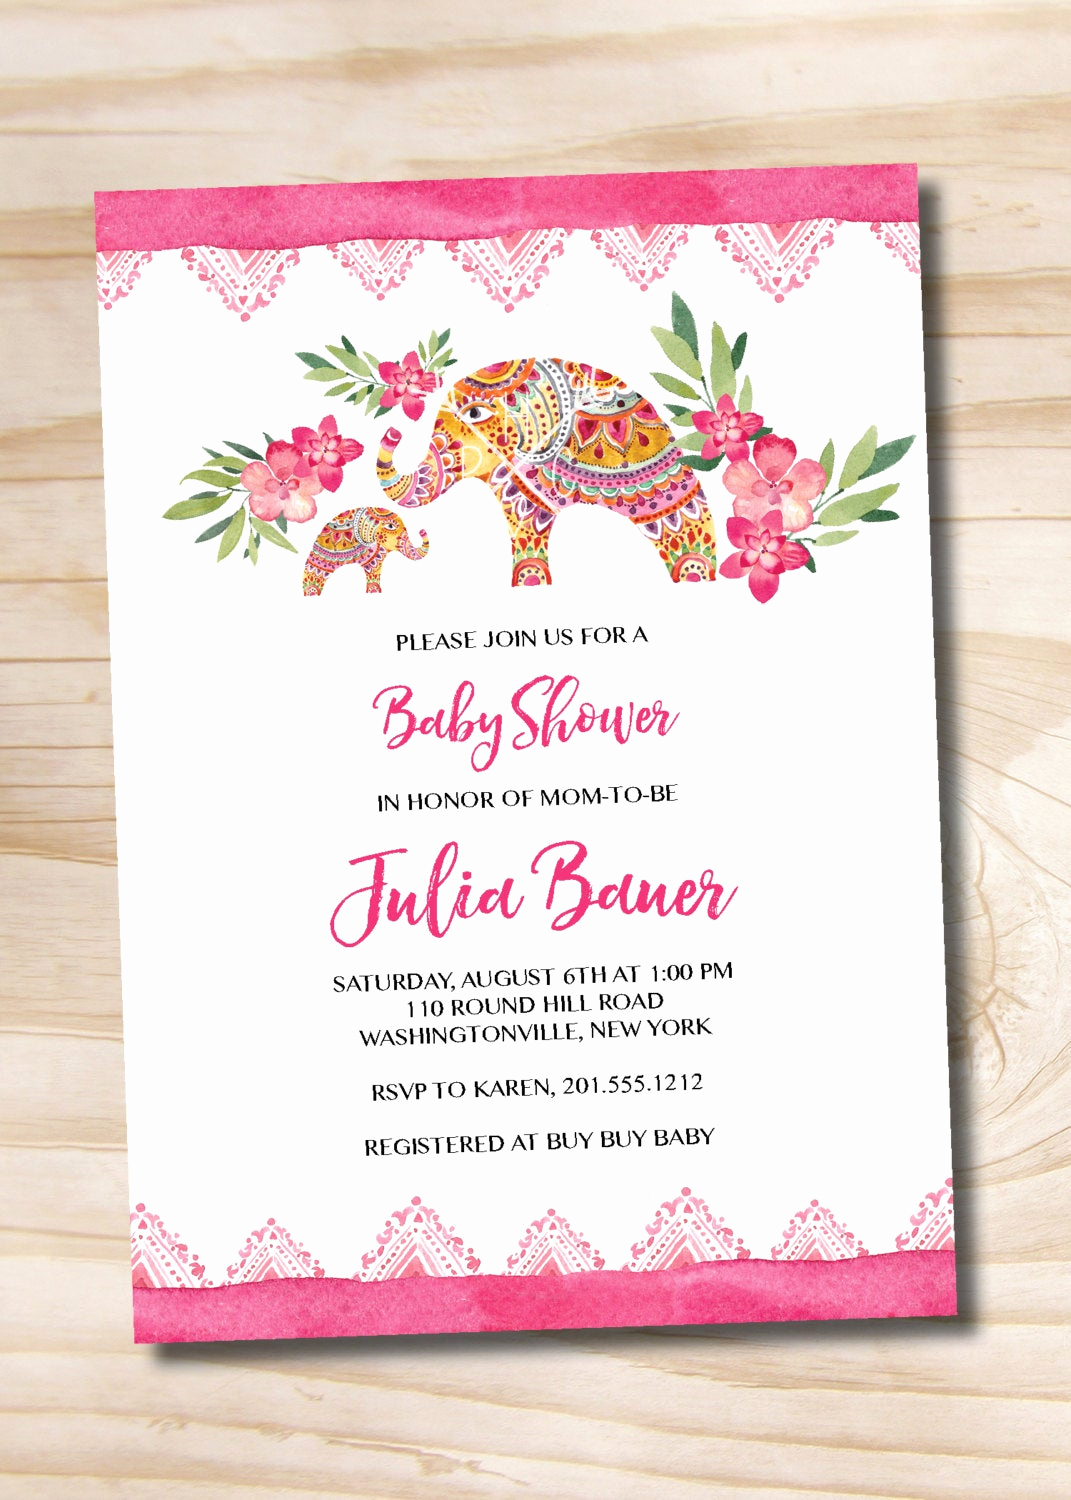 Indian Baby Shower Invitation Unique Boho Indian Floral Baby Shower Invitation Printable Digital